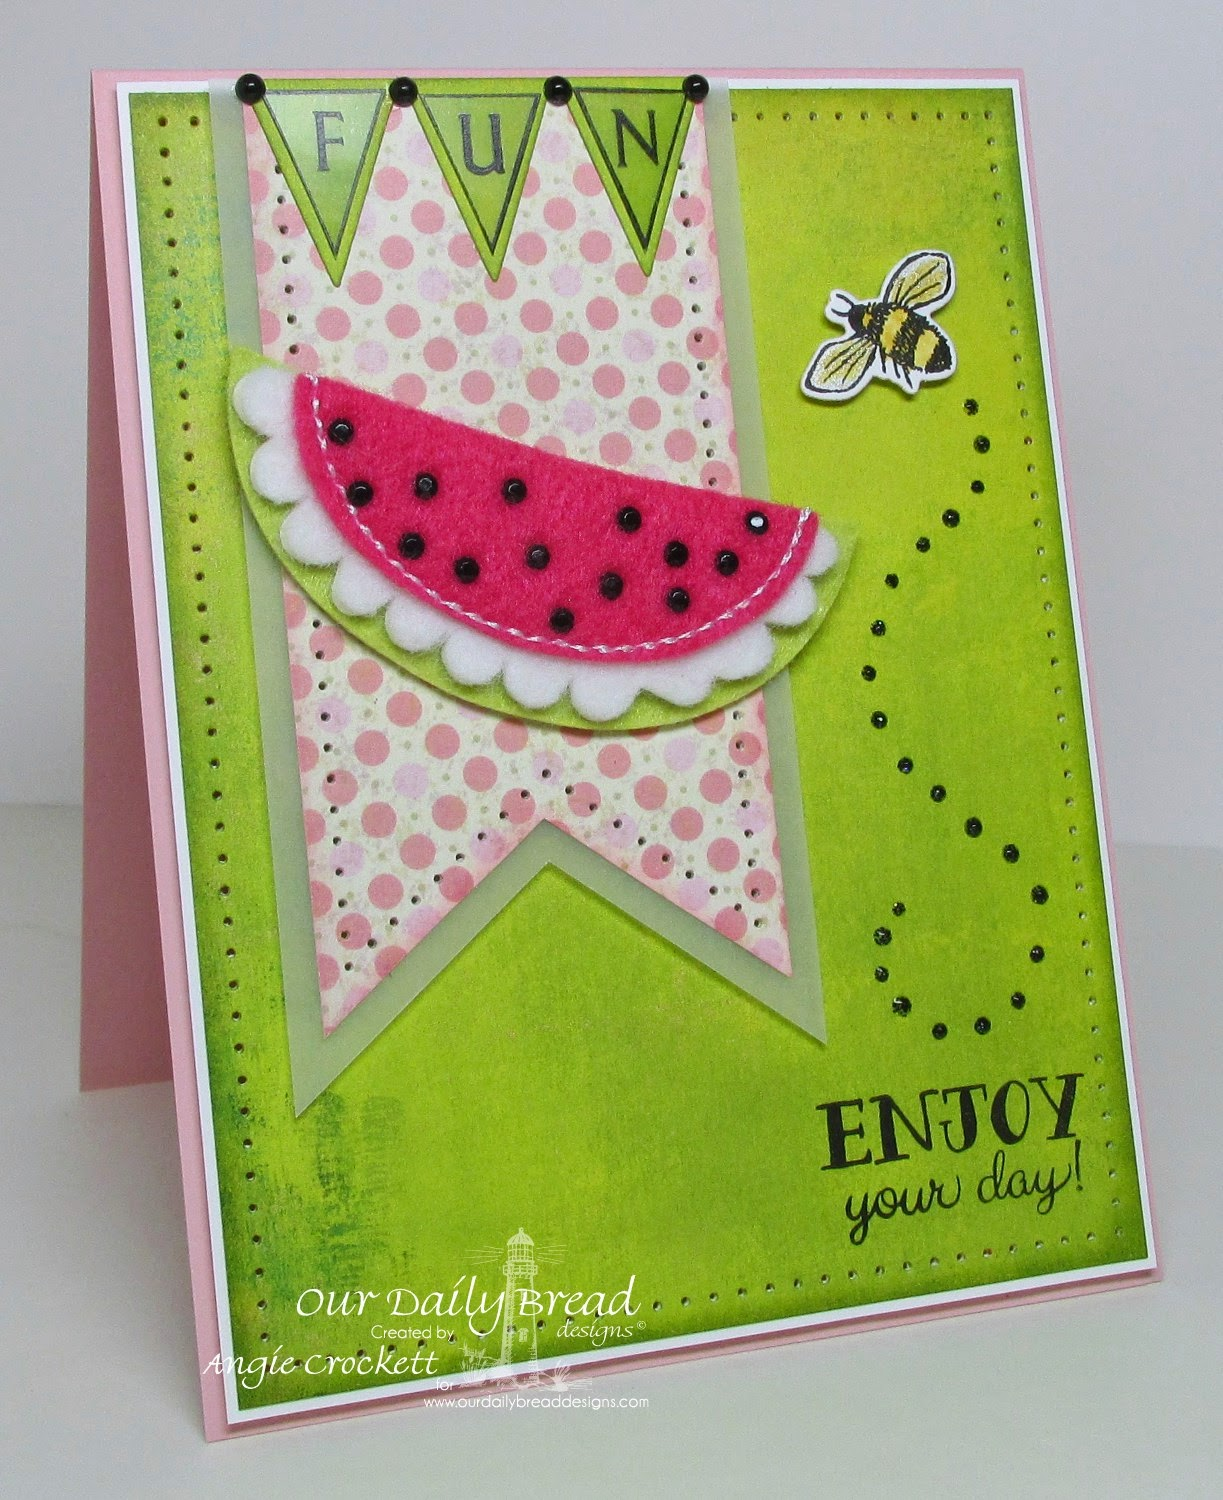 ODBD Flip Flop Fun, Pennant Alphabet, Zinnia, ODBD Custom Zinnia and Leaves Dies, ODBD Custom Pennants Dies, Blushing Rose Designer Paper Collection, Card Designer Angie Crockett